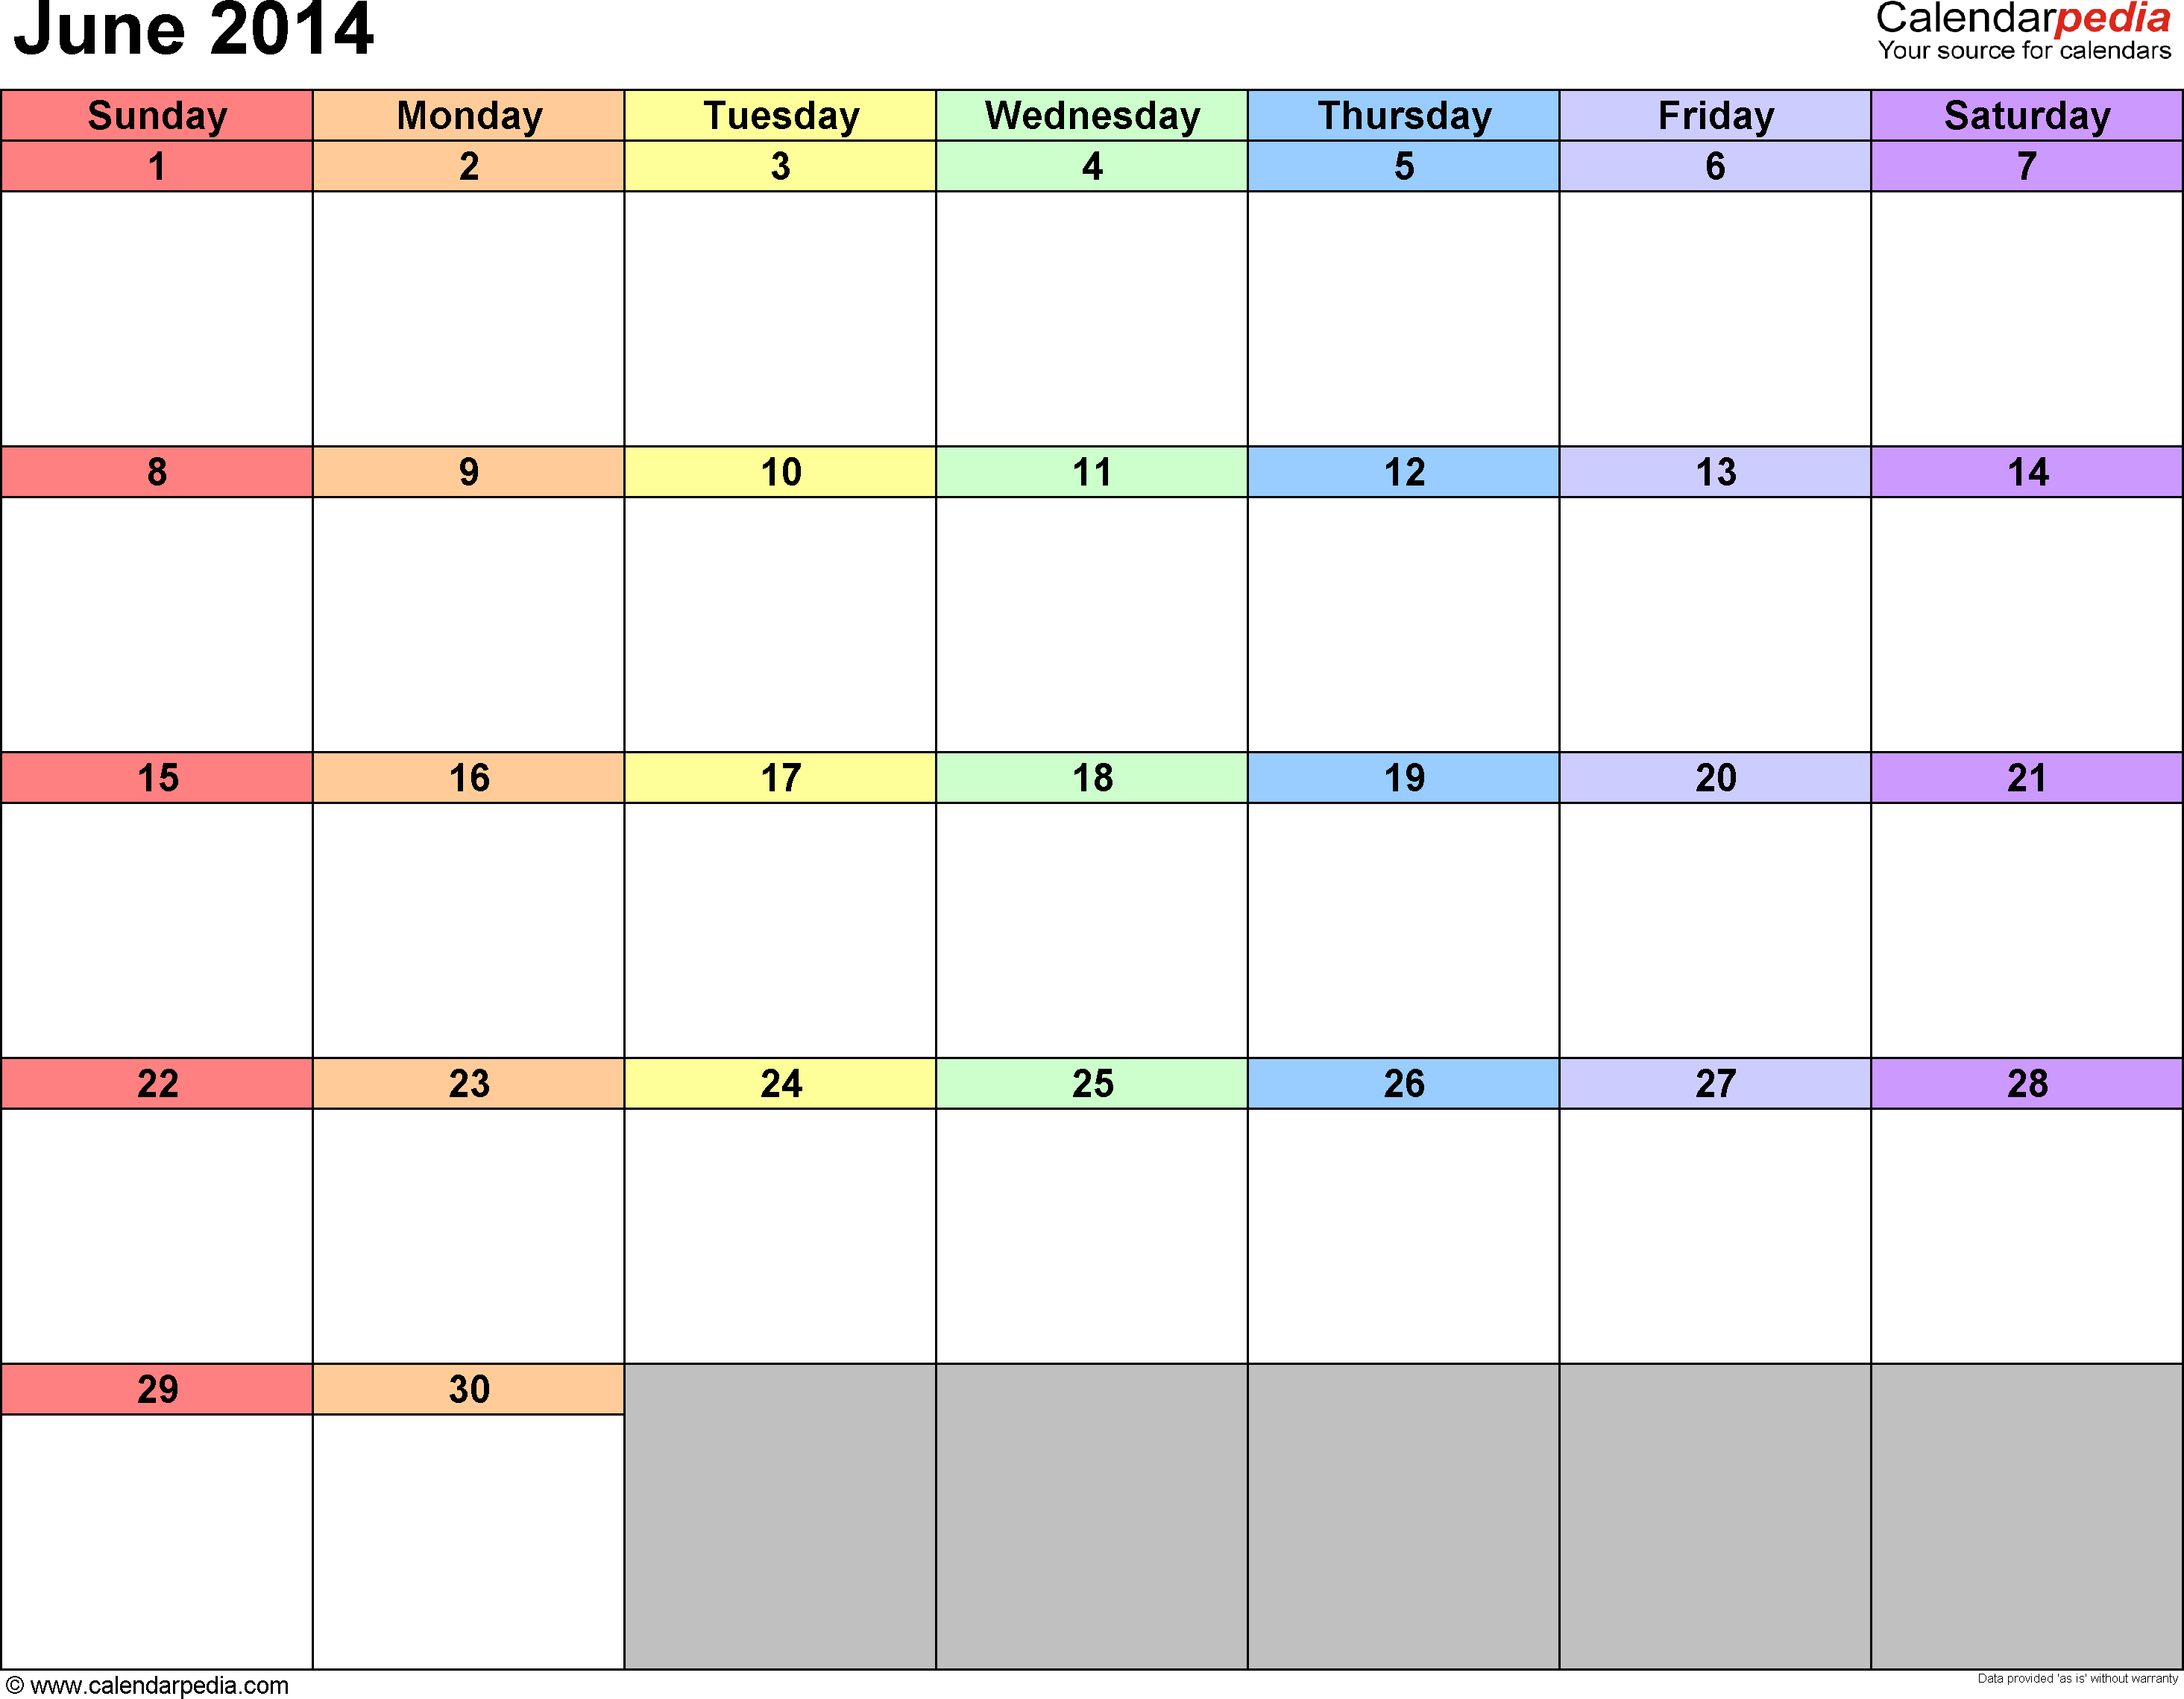 June 2014 calendar printable template